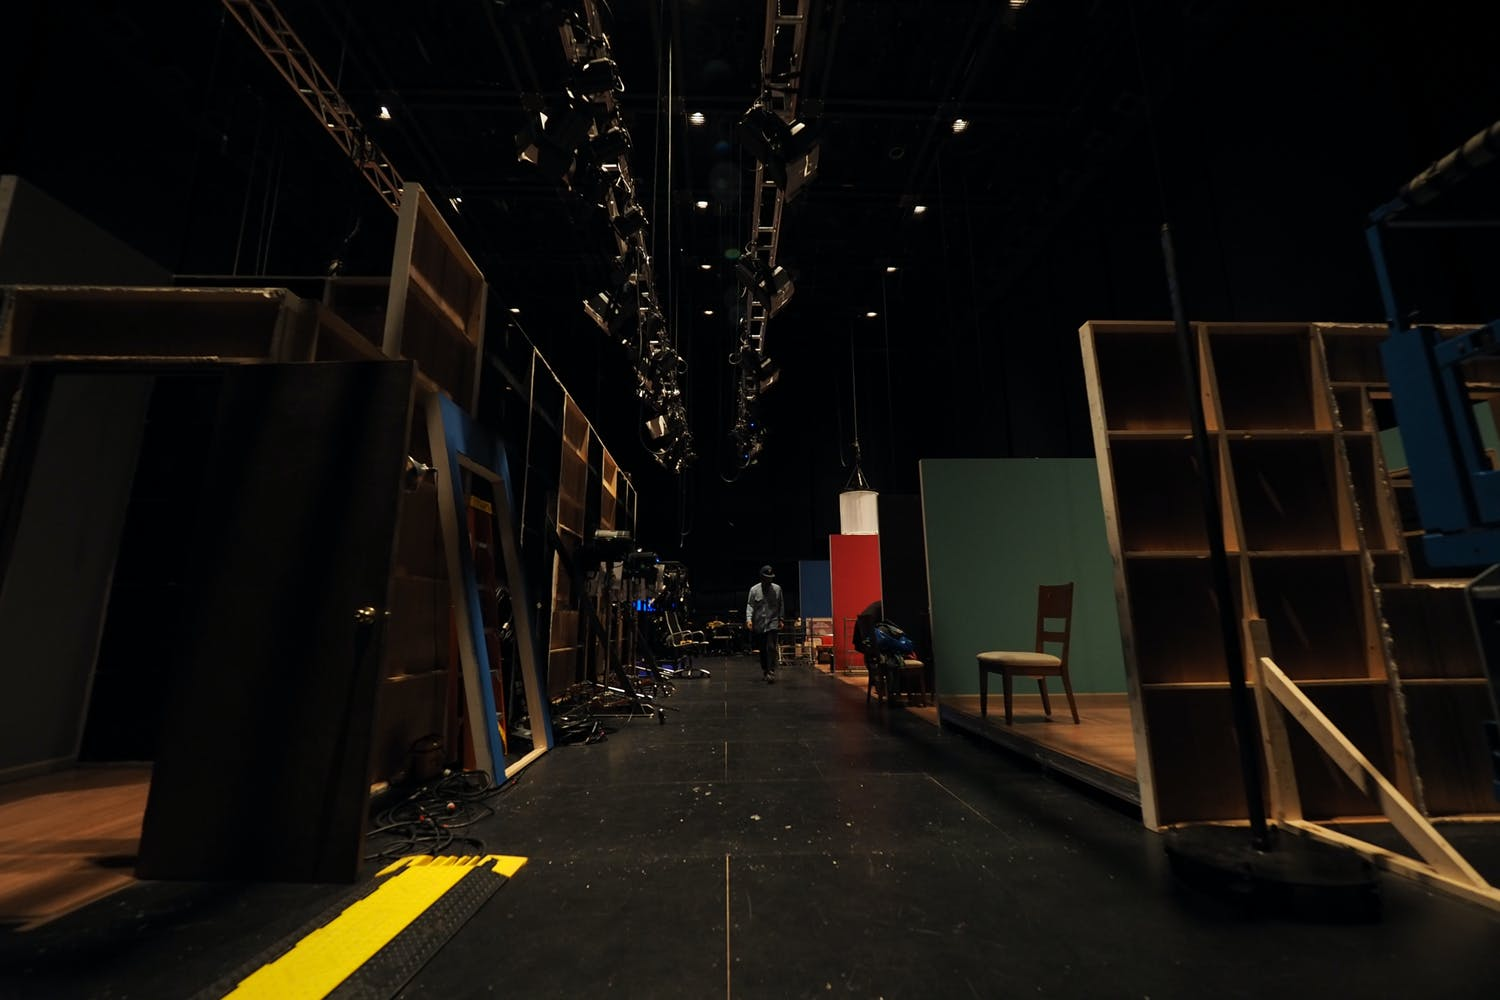 A man walks through the darkened backstage of a theater.